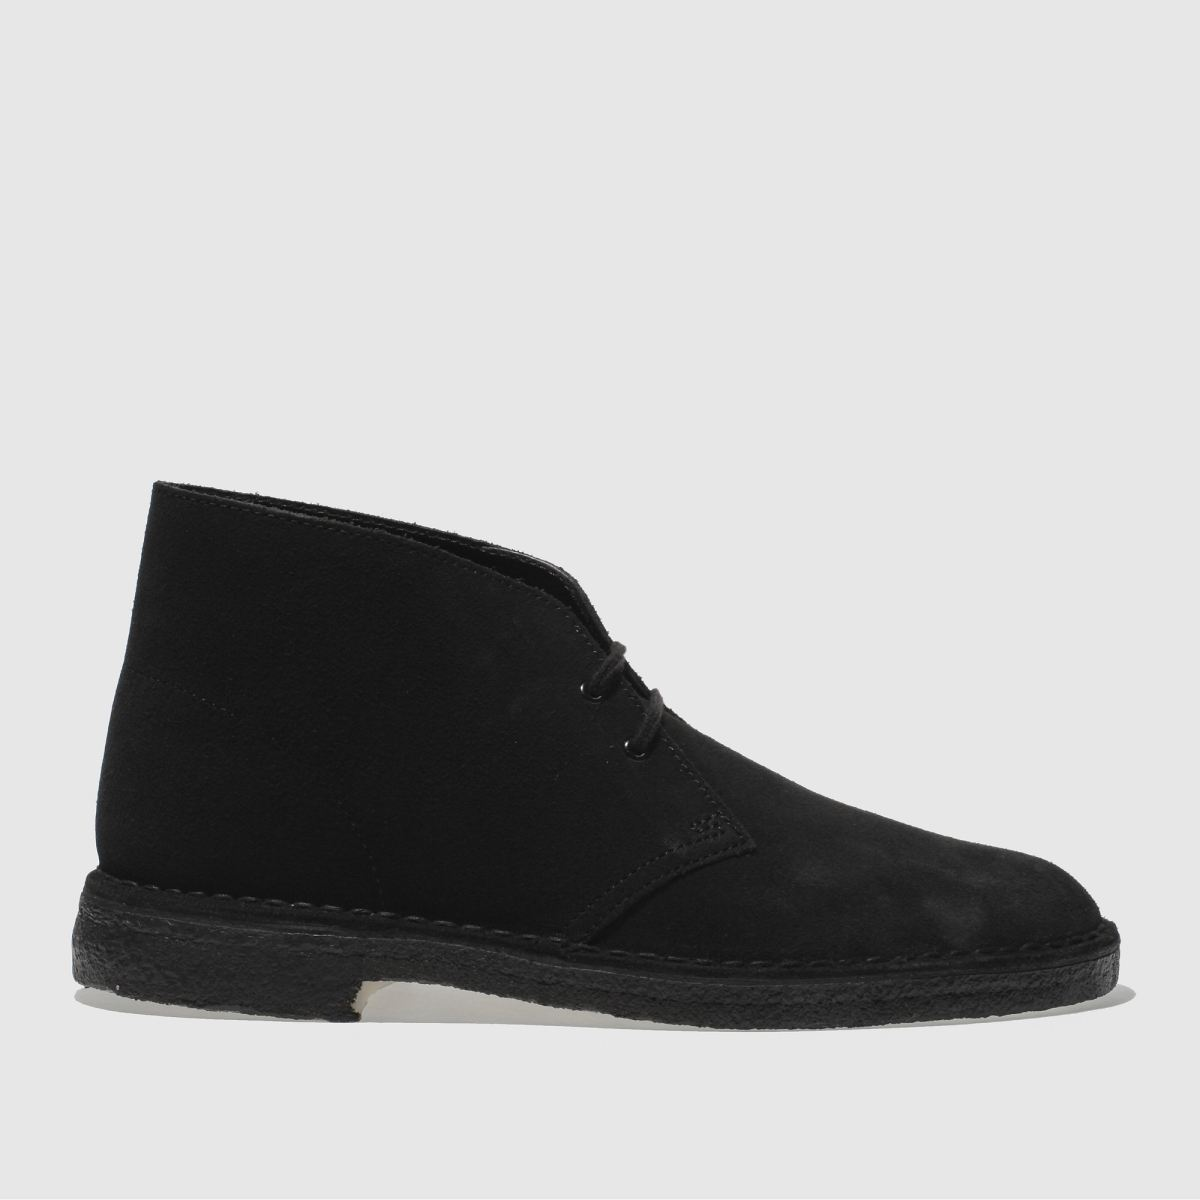 clarks originals black desert boots